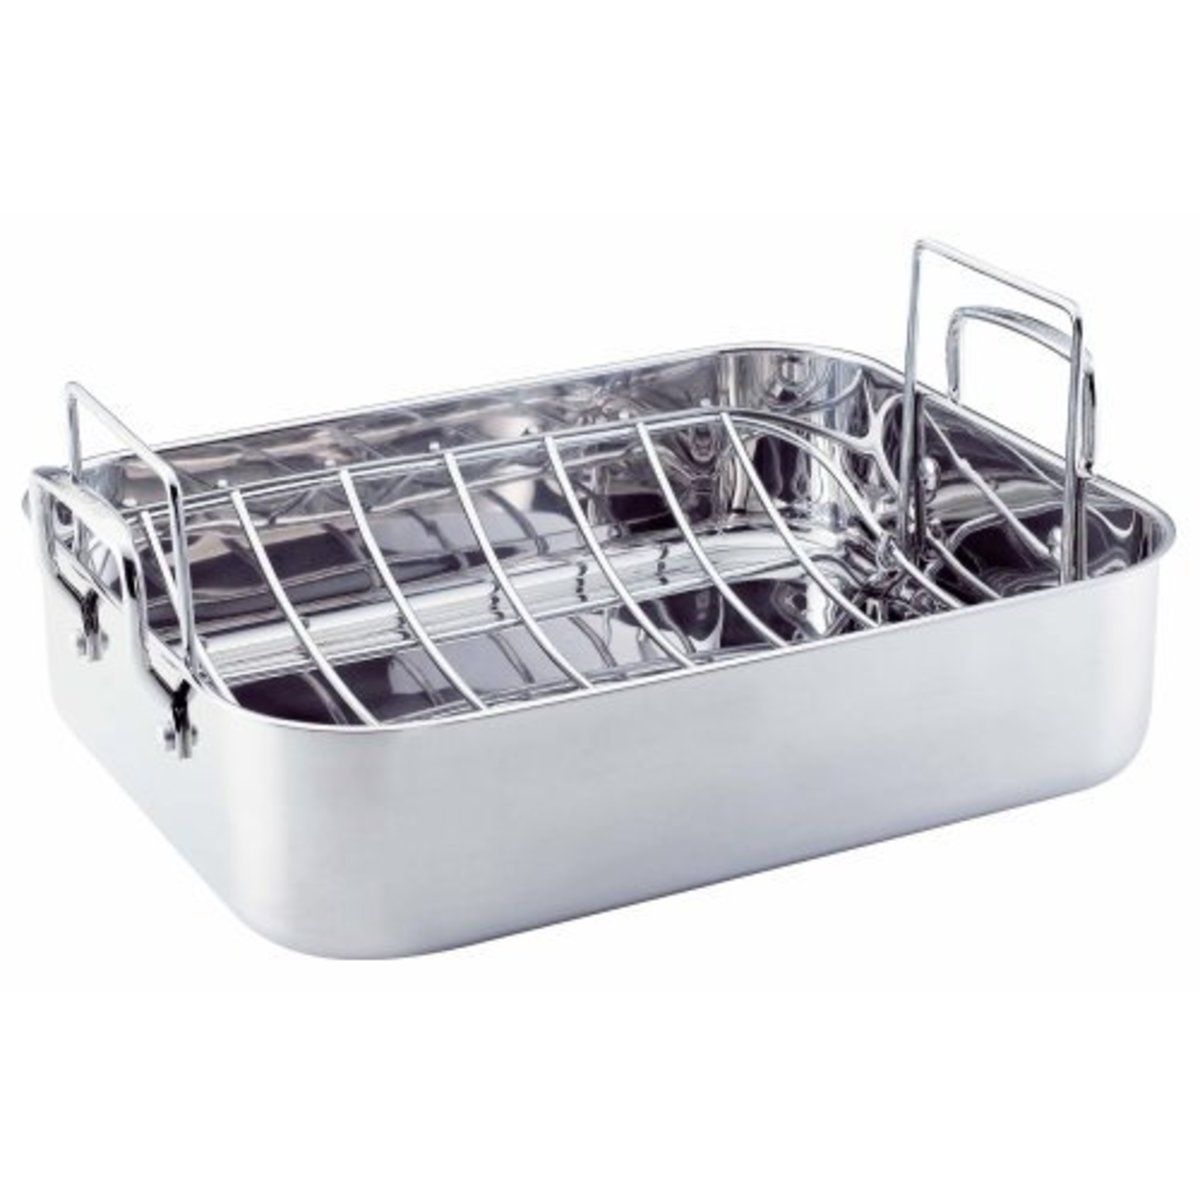 Beautiful Stainless Steel 16-1/2-Inch Rectangular Roasting  pan with Rack